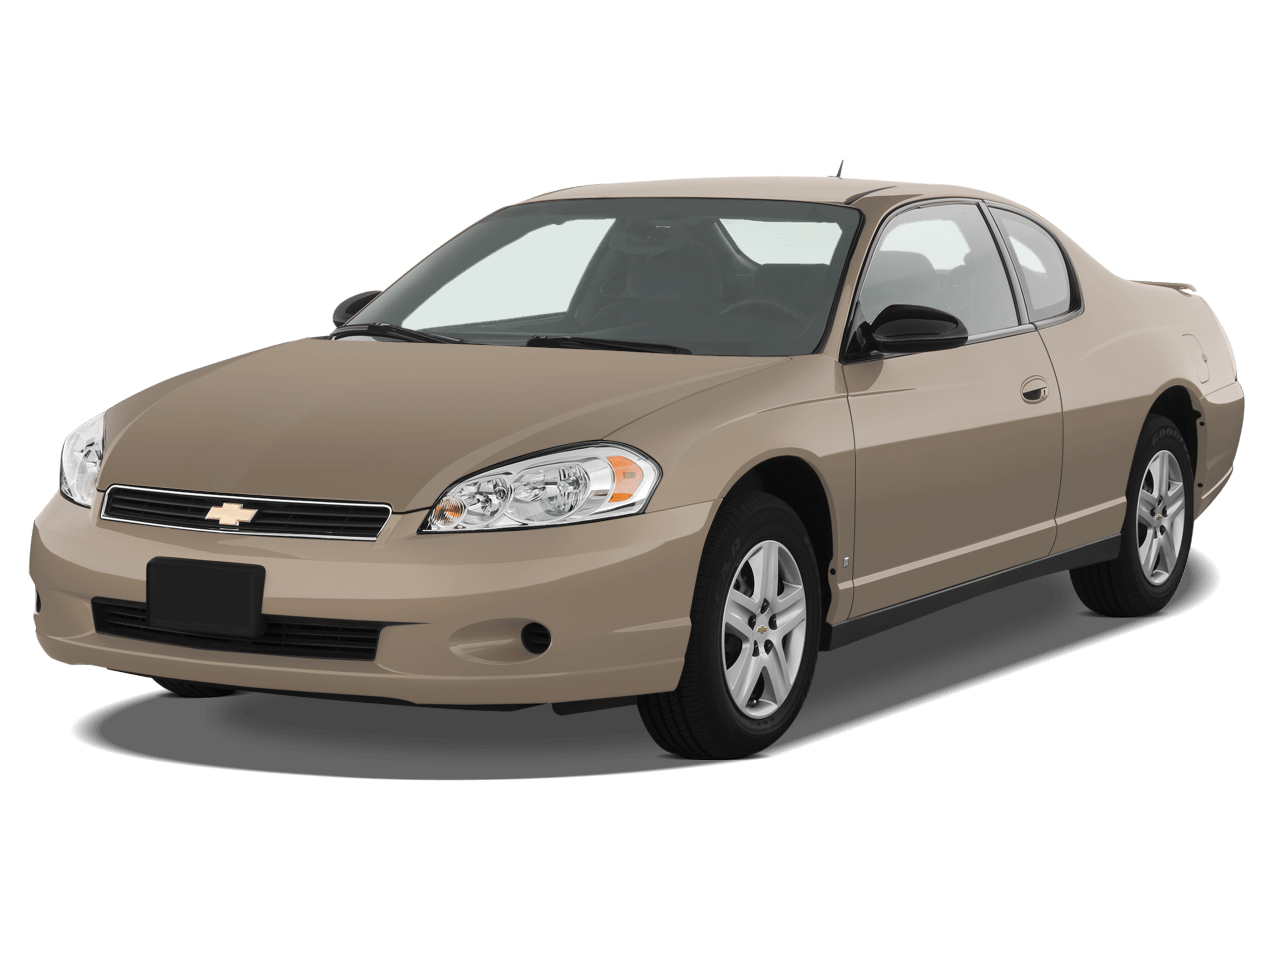 2007 Chevrolet Monte Carlo Reviews And Rating  Motor Trend